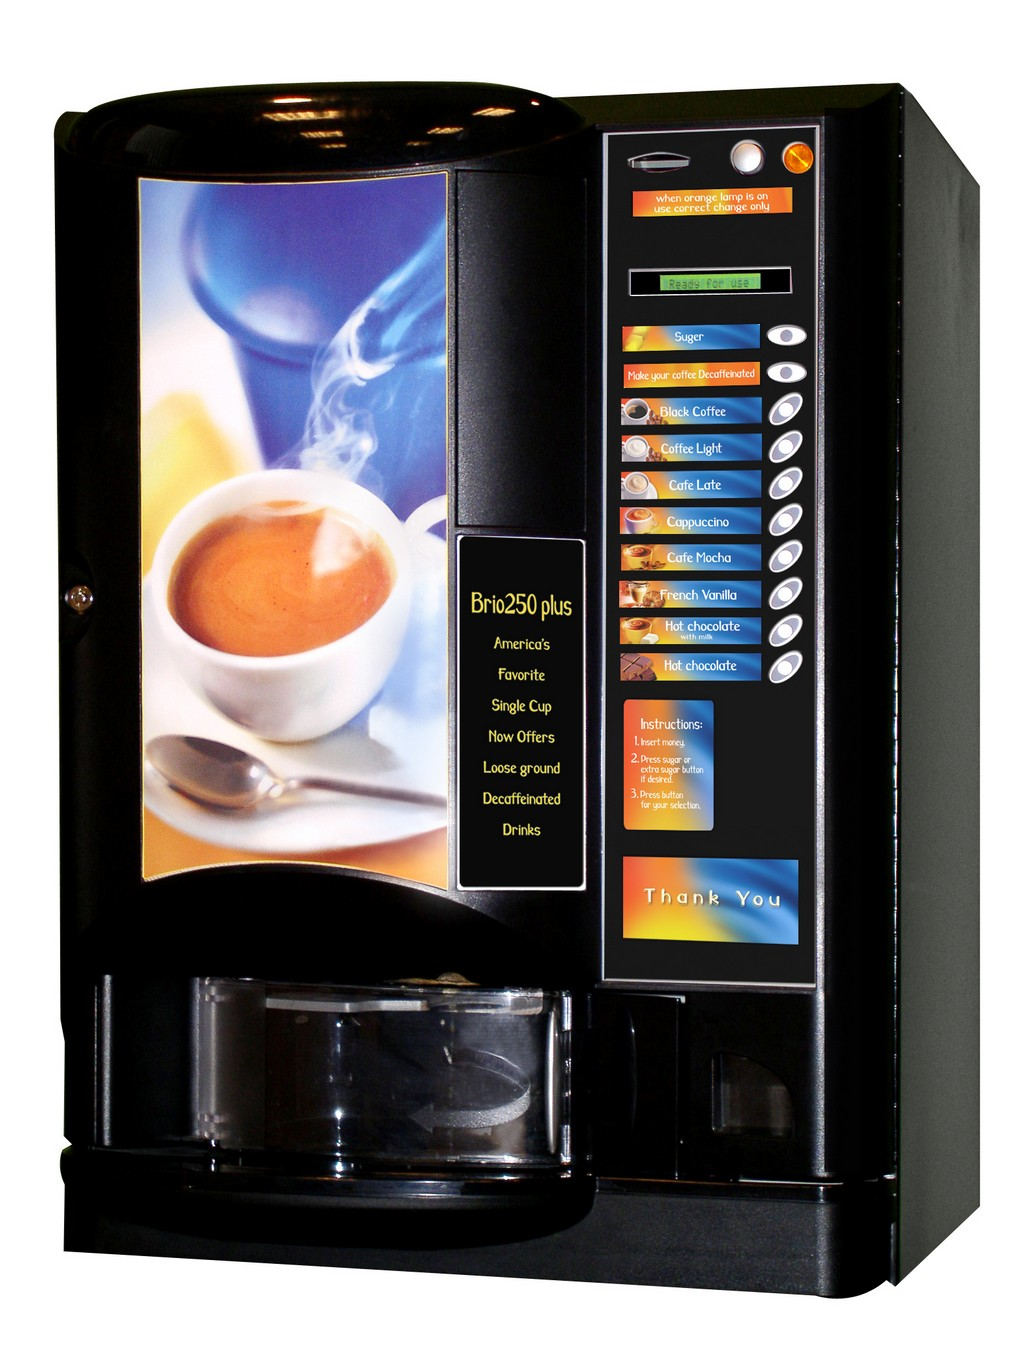 tea vending machine price, used vending machine in milwaukee wi, small vending machine